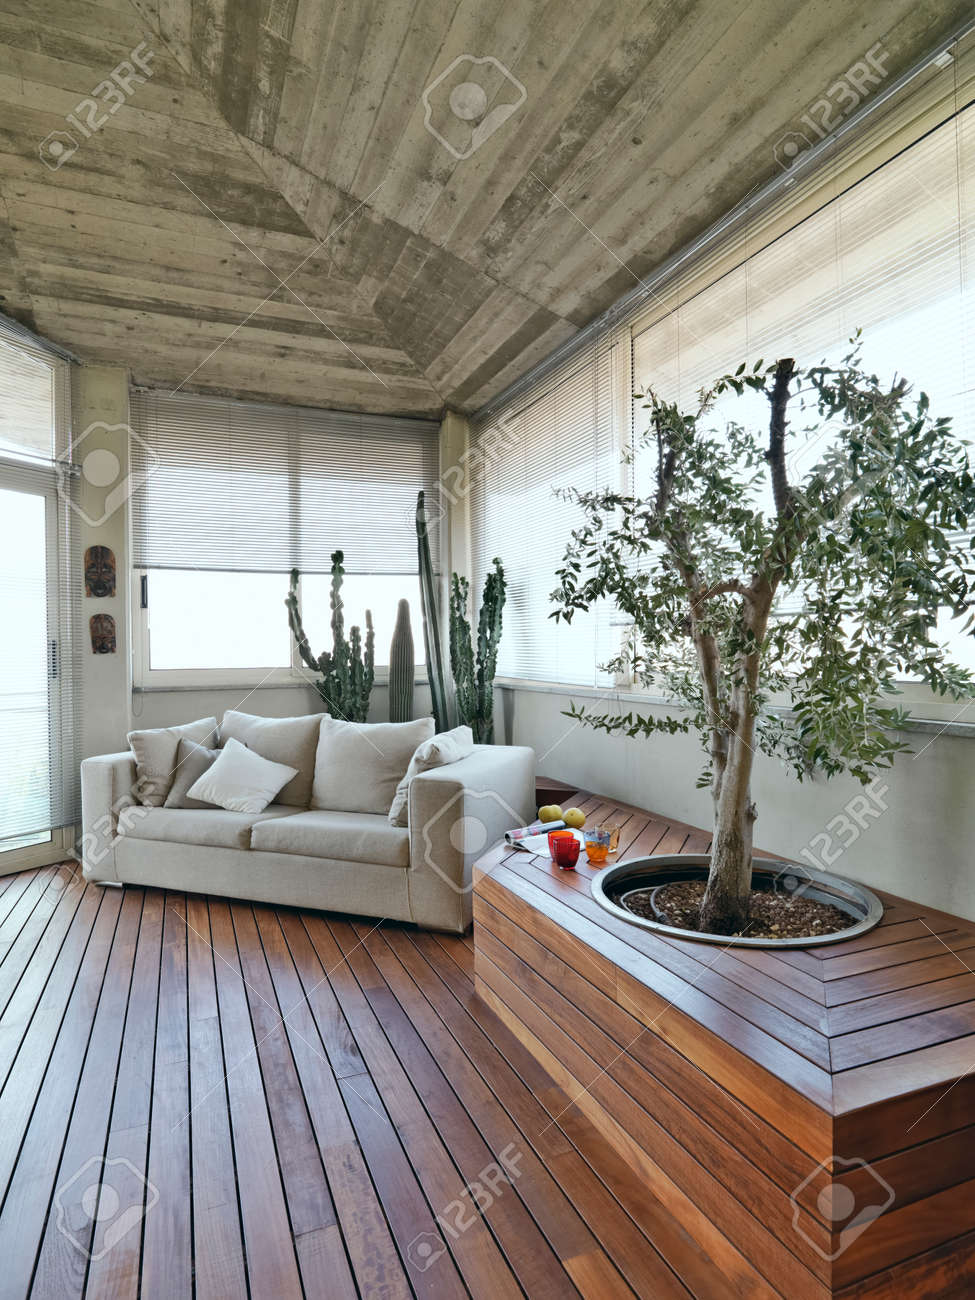 Superb Modern Terrace With Sofa And Wood Floor Stock Photo   39437210